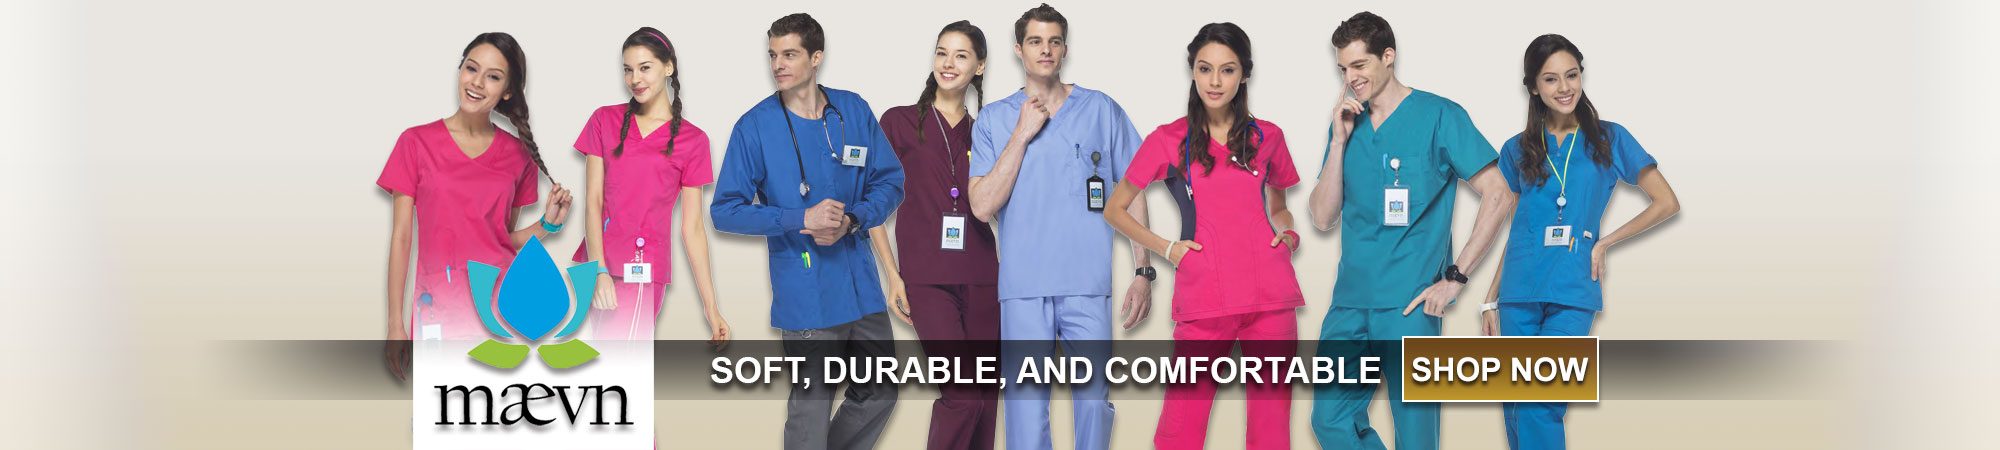 Maevn Scrubs Apparel